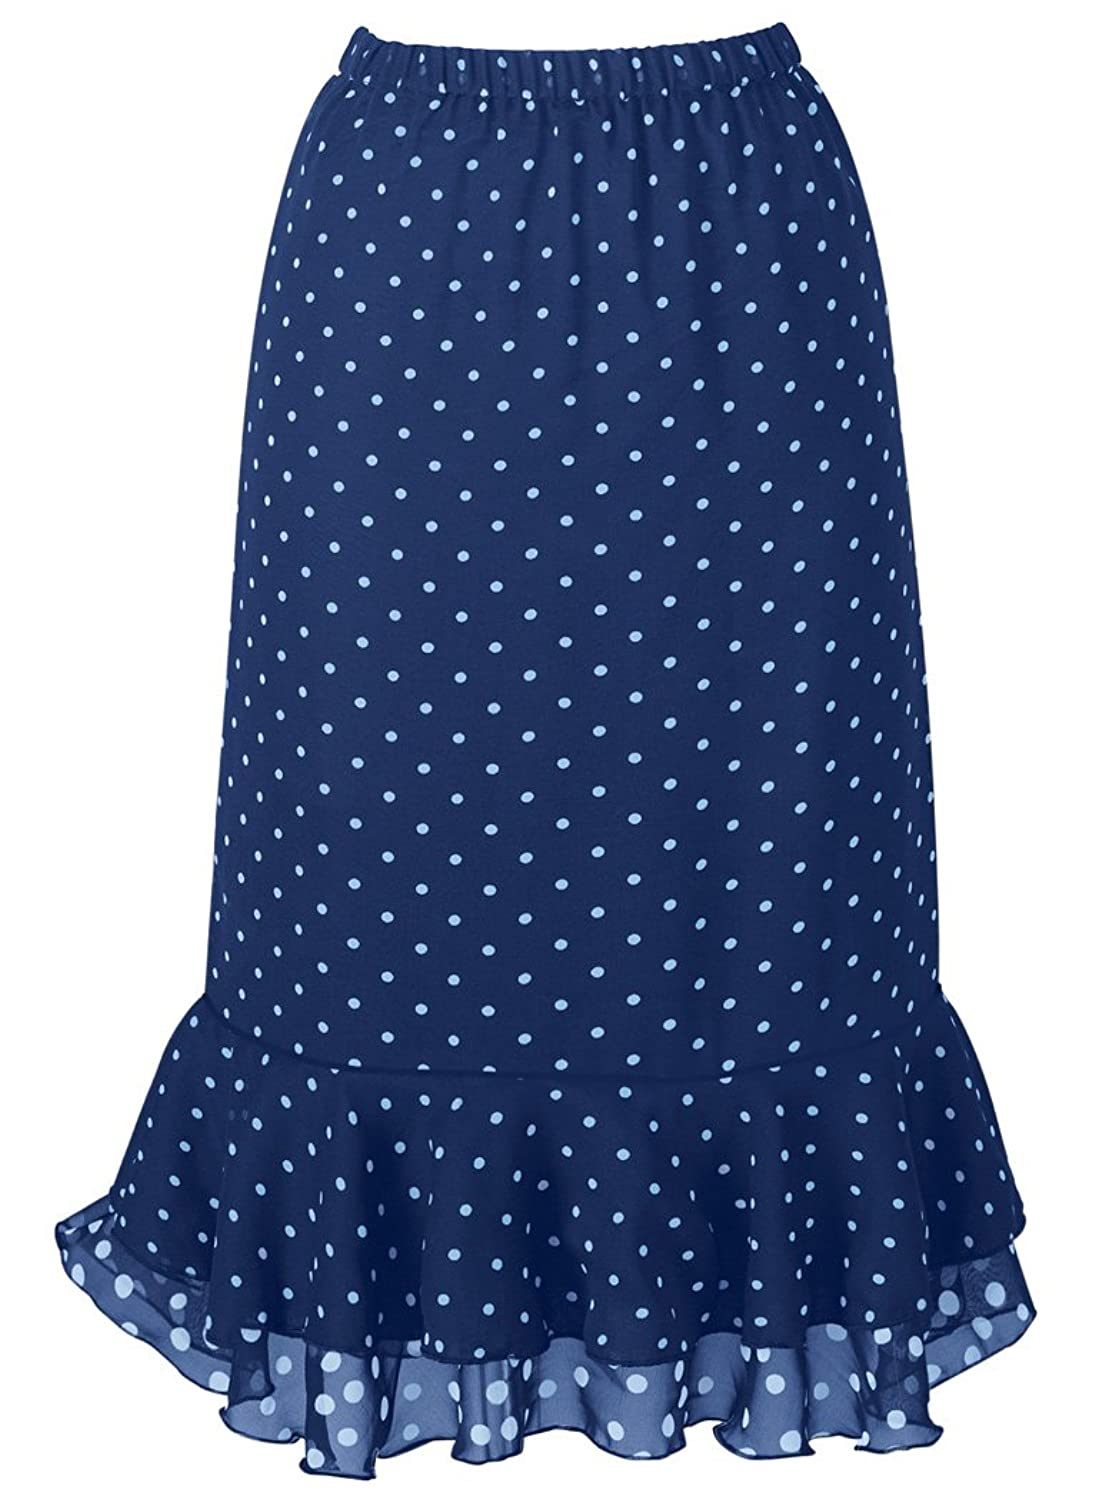 Retro Skirts: Vintage, Pencil, Circle, & Plus Sizes Dotted Flounced Skirt  AT vintagedancer.com